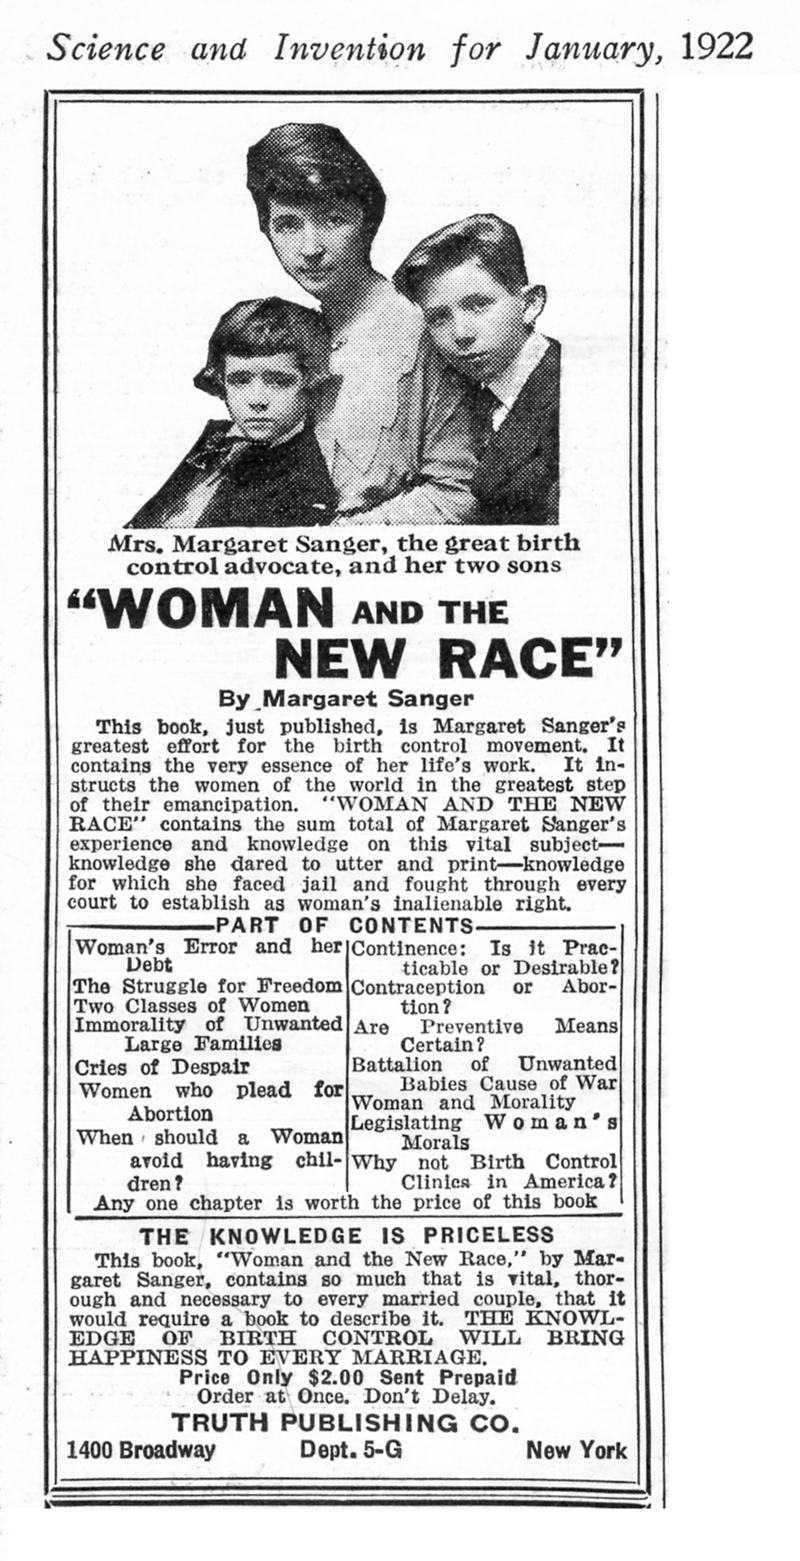 """An advertisement for a book entitled """"Woman and the New Race"""". At the top is a photo of a woman, seated affectionately with her two sons."""